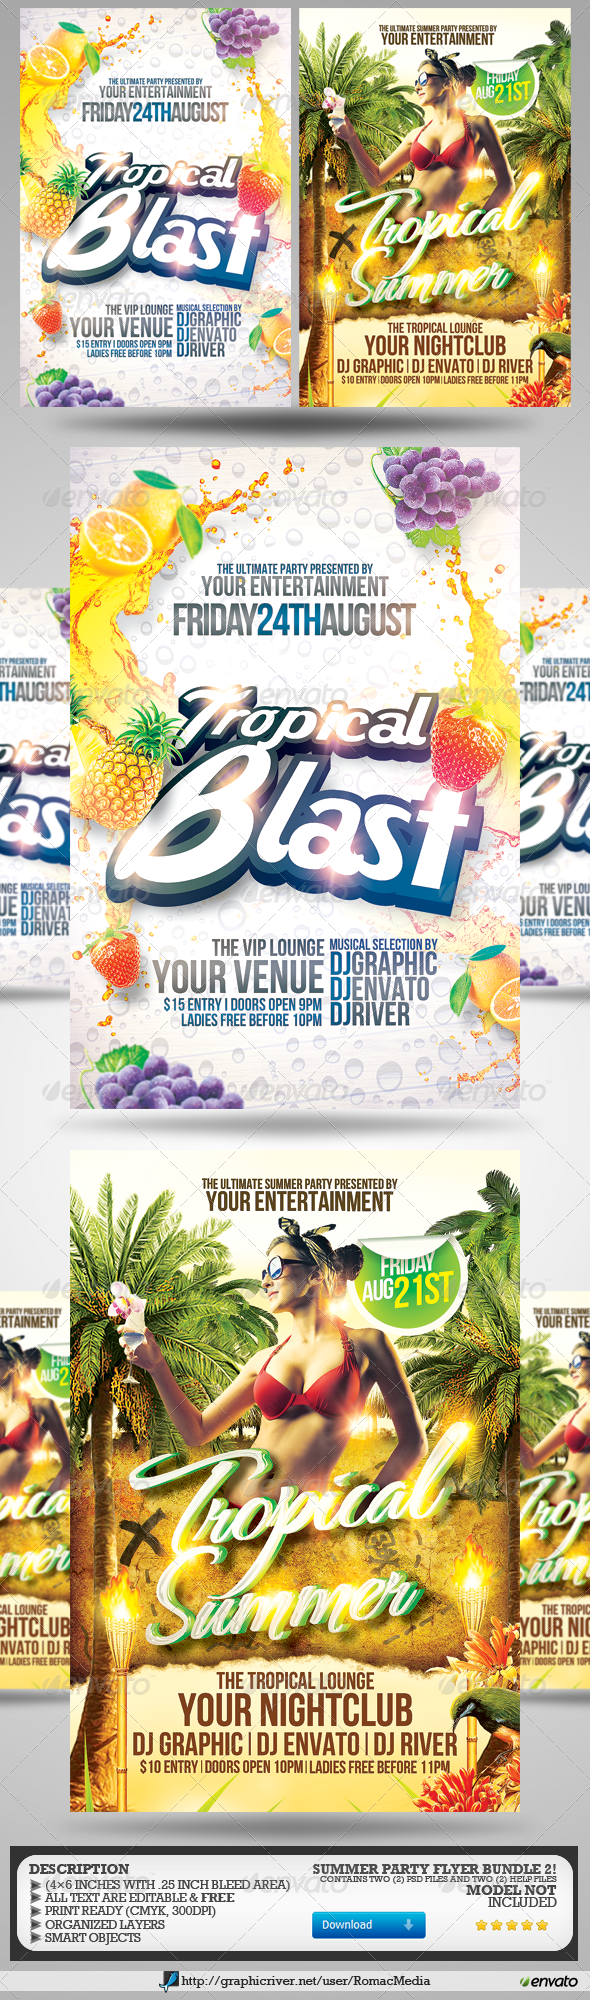 Summer Party Flyers Bundle 2